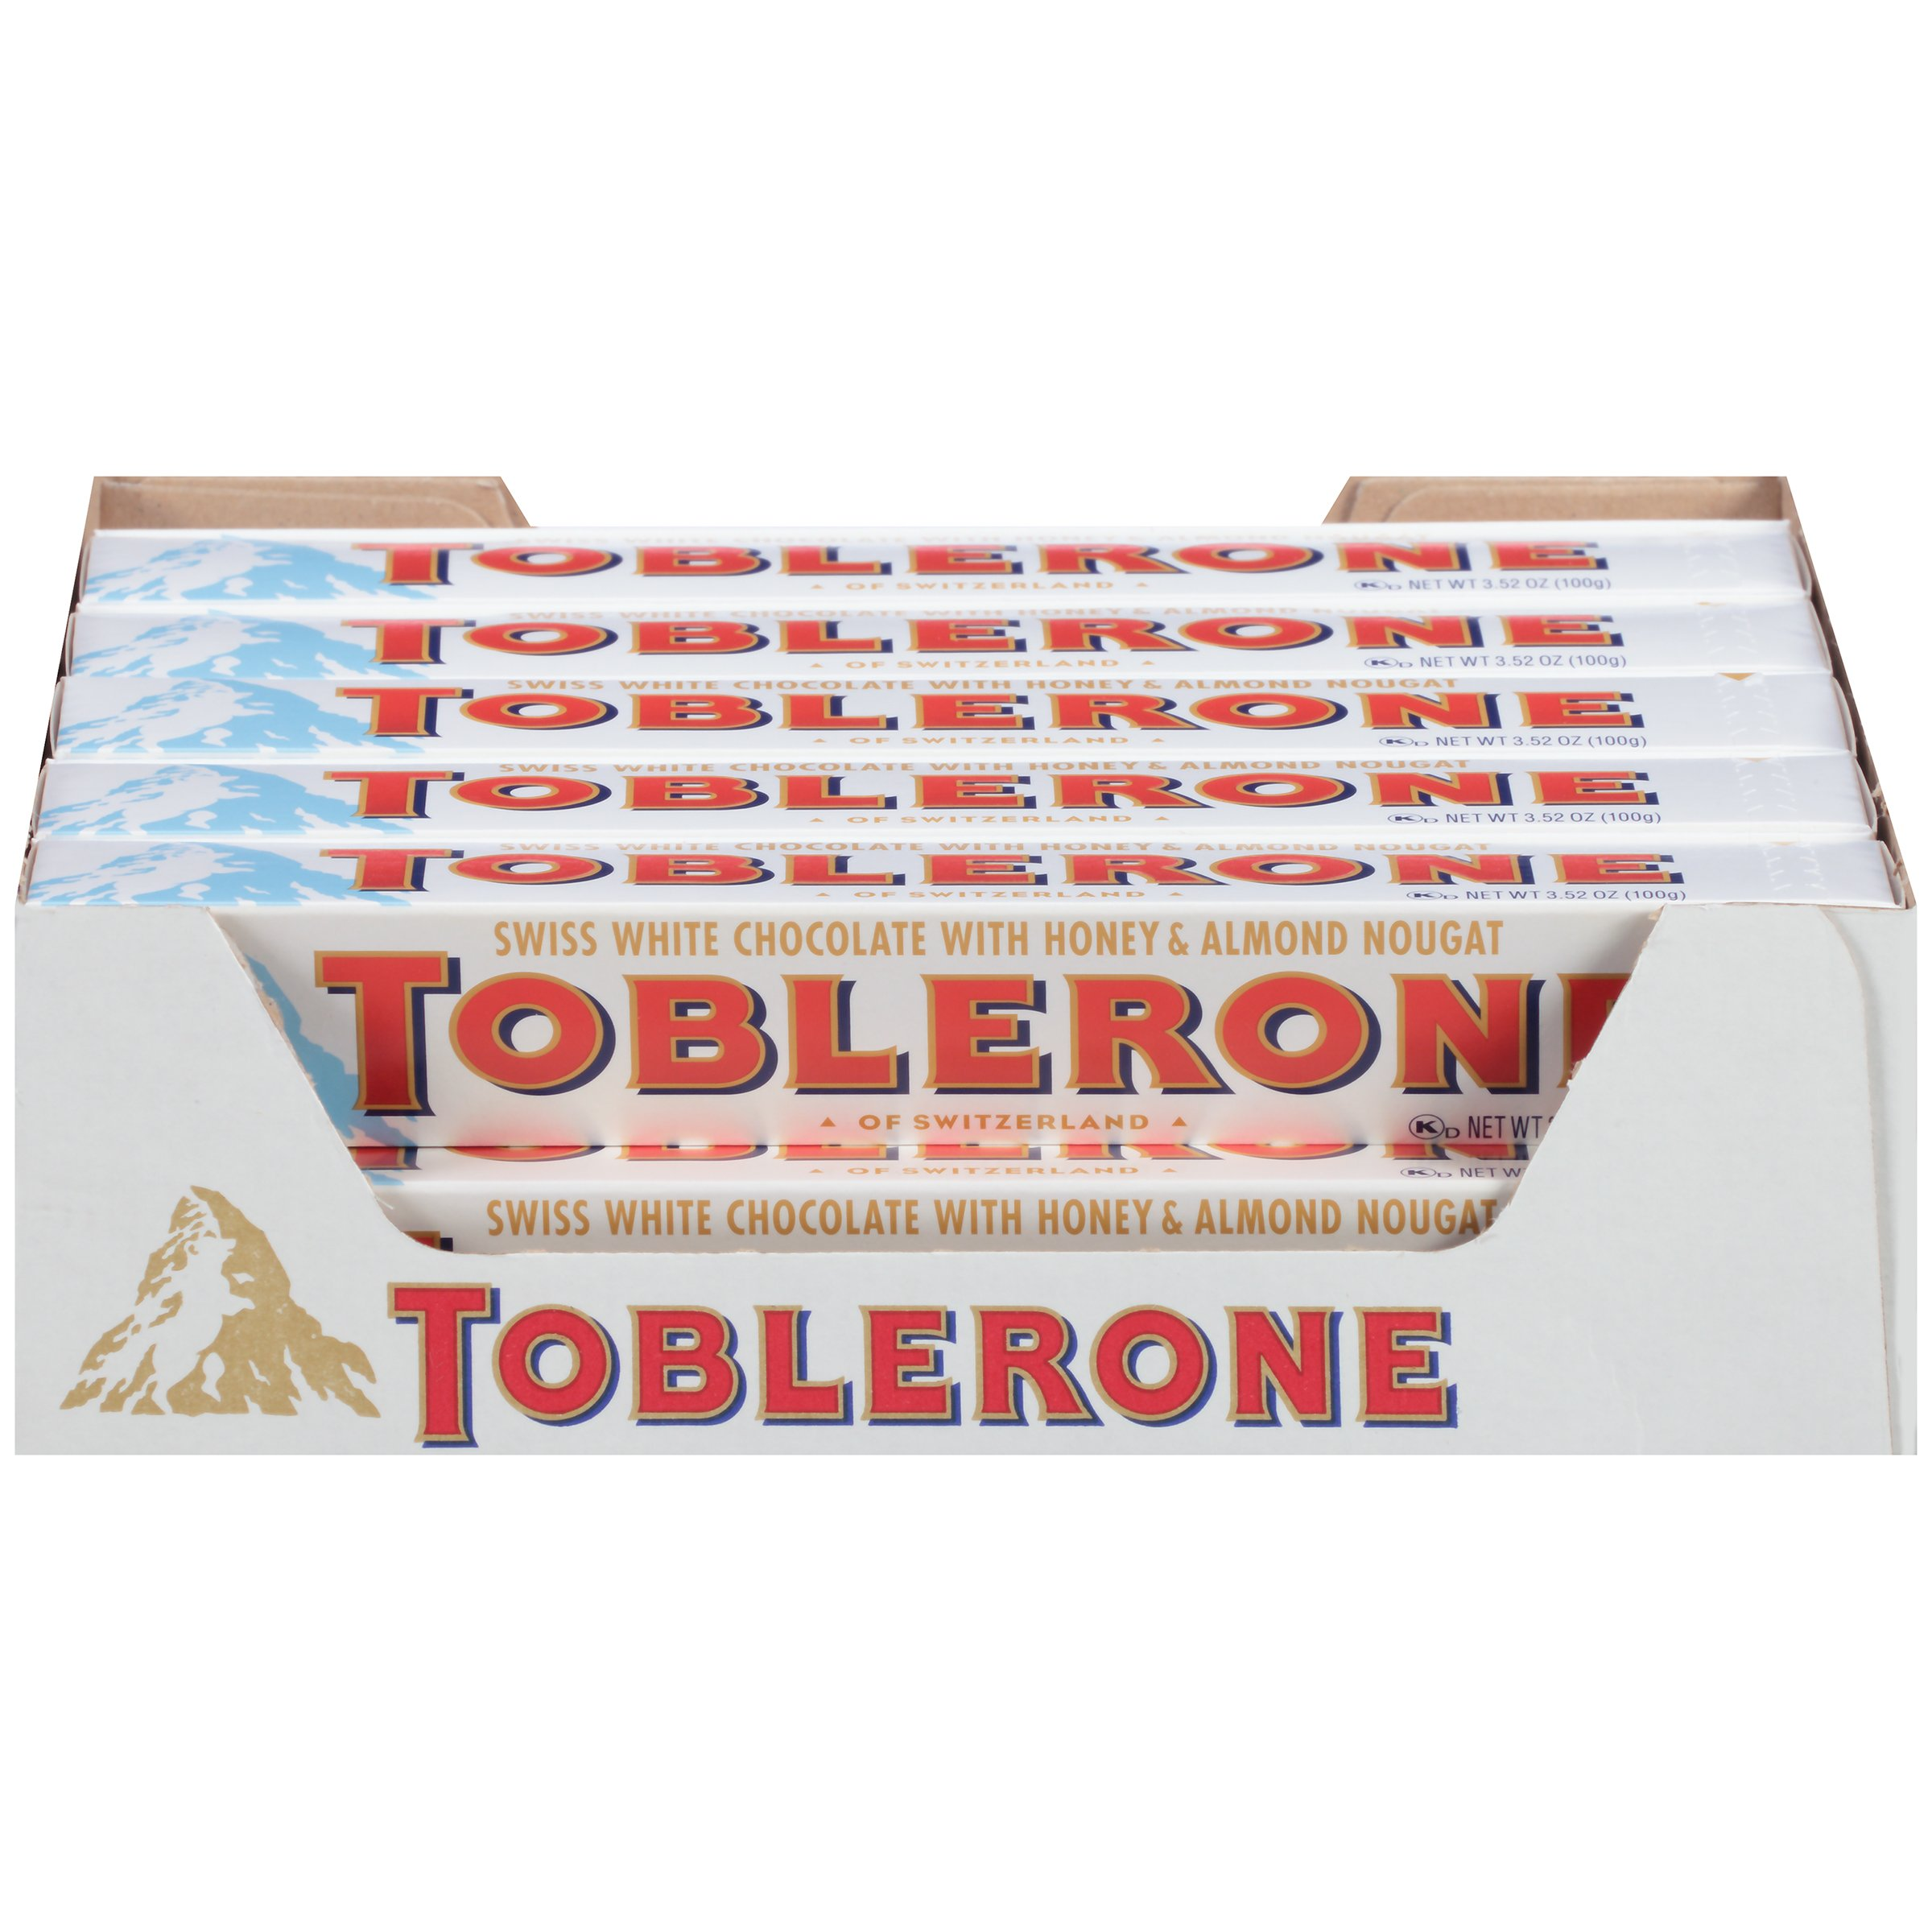 Toblerone Swiss White Chocolate with Honey and Almond Nougat, 3.52 Ounce Bars (Pack of 20) by Toblerone